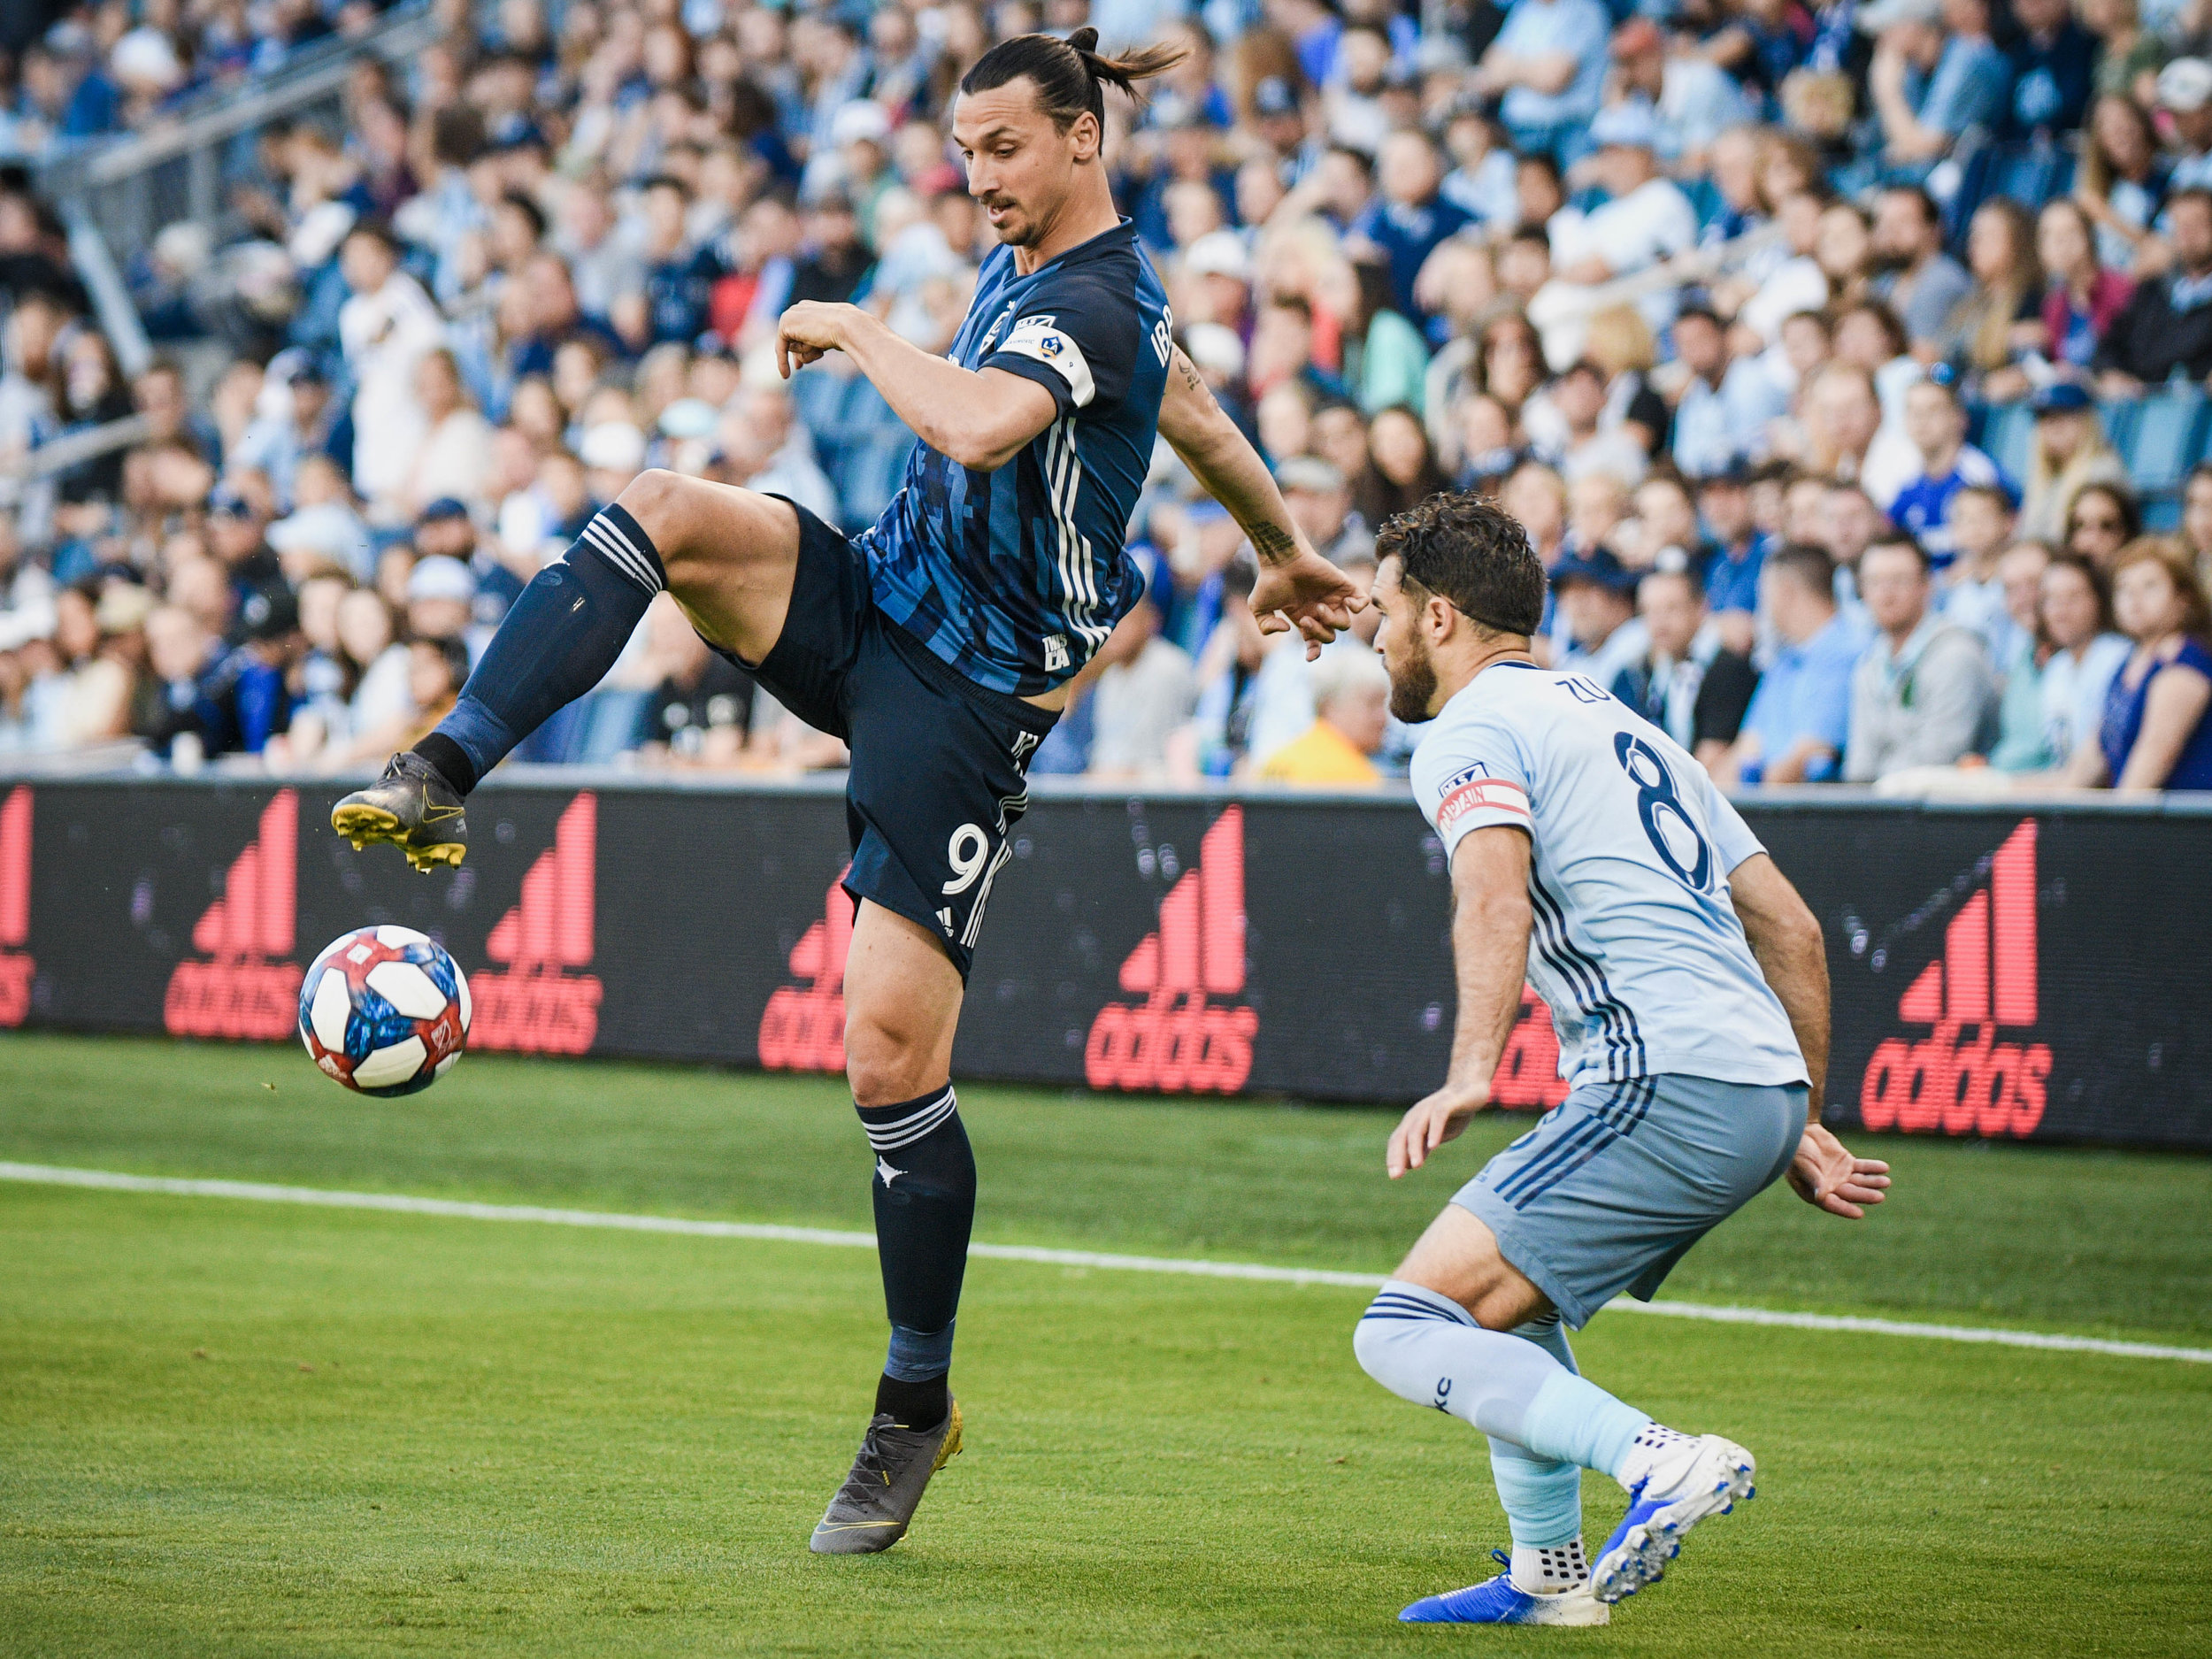 LA Galaxy striker Zlatan Ibrahimovic (9) controls the ball during the game against Sporting KC on Wednesday, May 29, 2019 at Children's Mercy Park in Kansas City, Kansas. Sporting fell to the Galaxy 2-0.